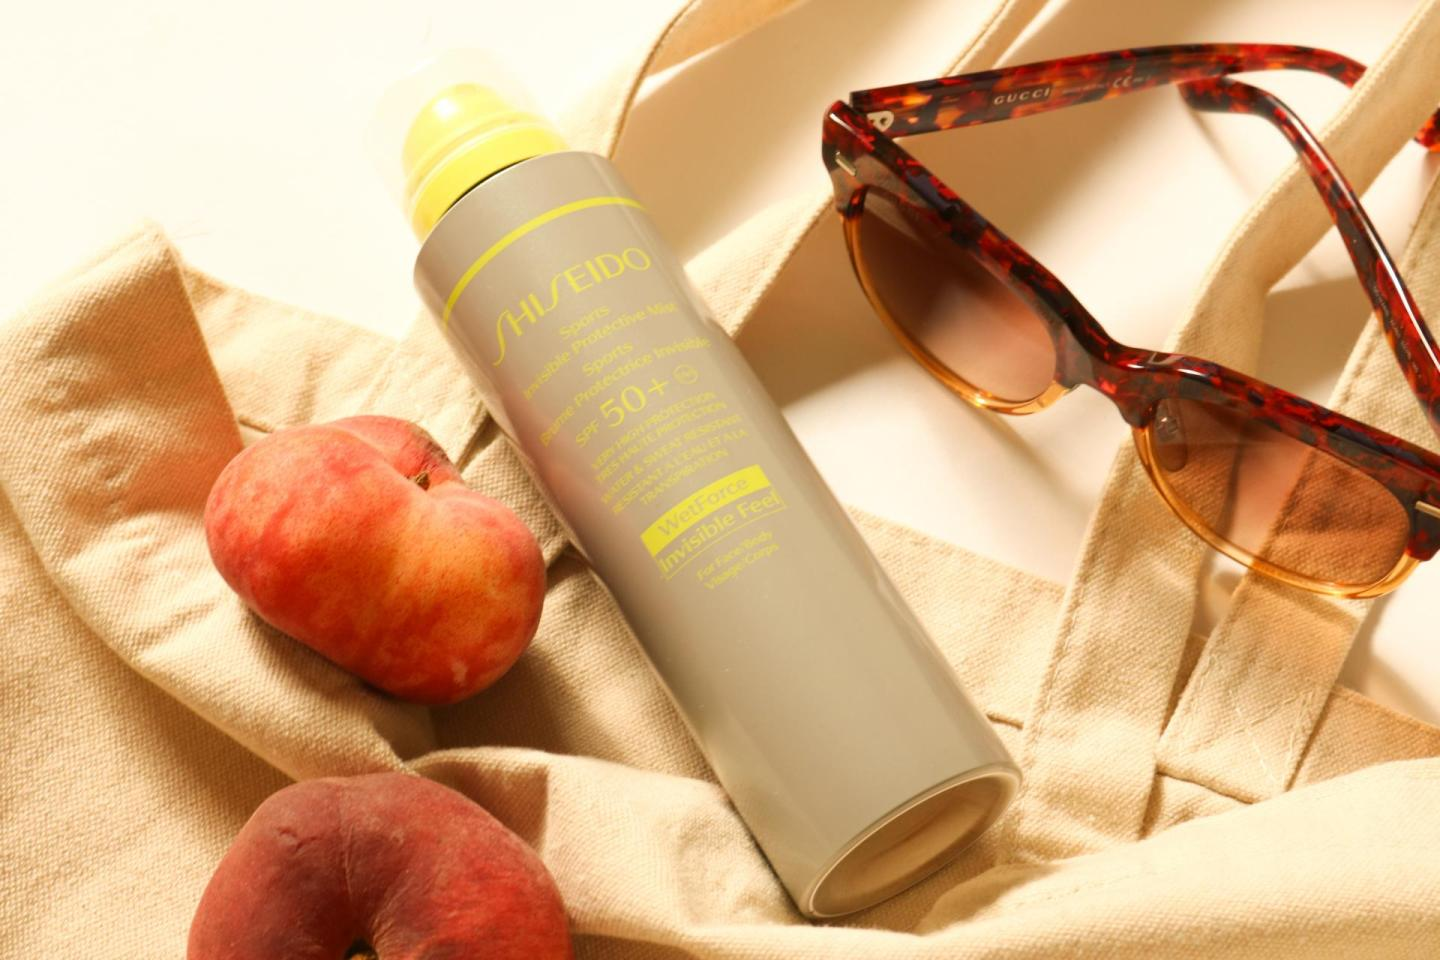 the Sports Invisible Protective Mist SPF50+ sunscreen